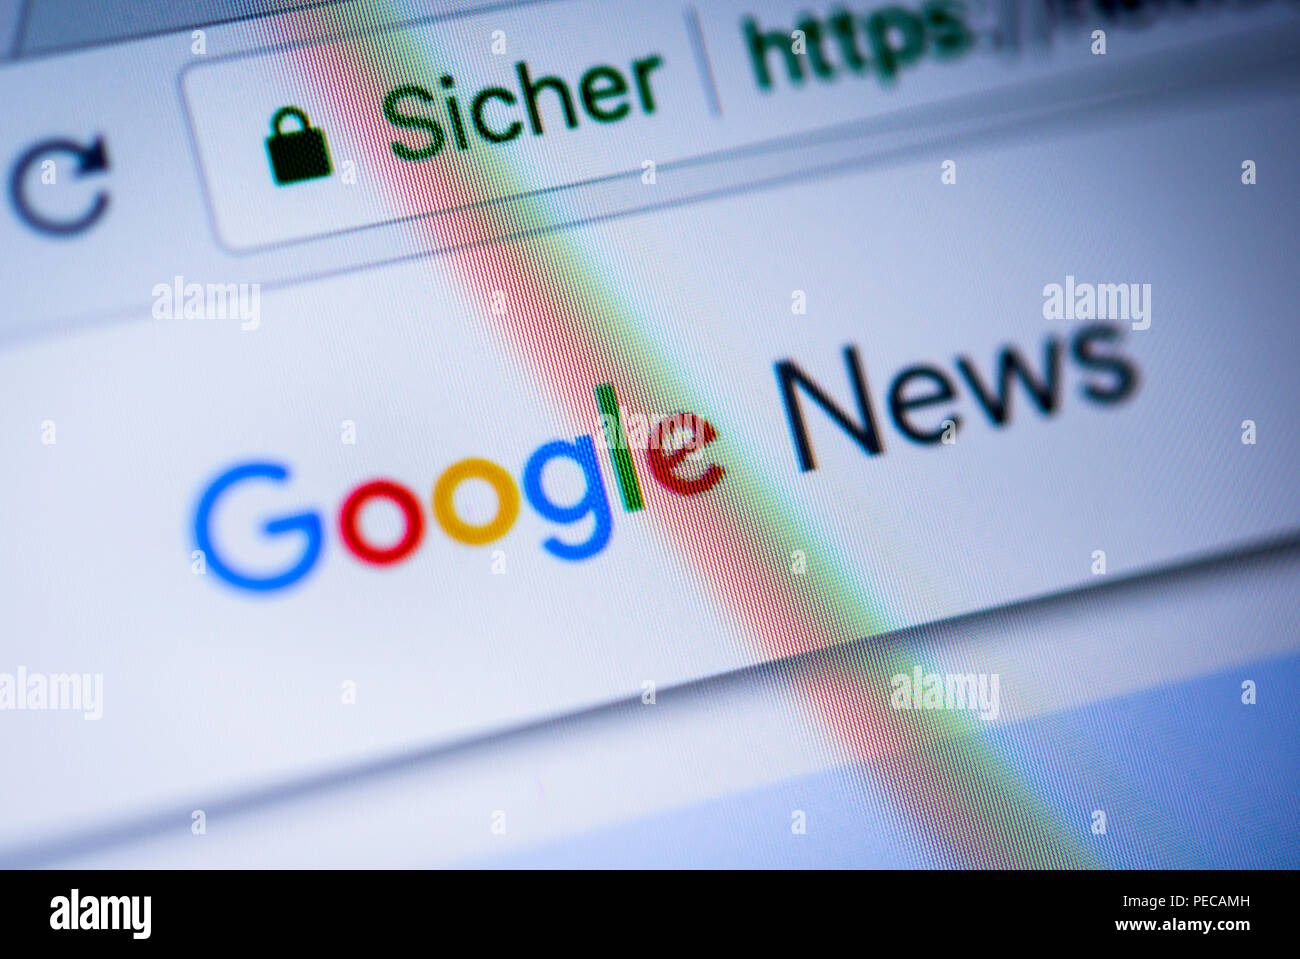 Google News logo displayed in a Browser, close-up, detail, Germany - Stock Image